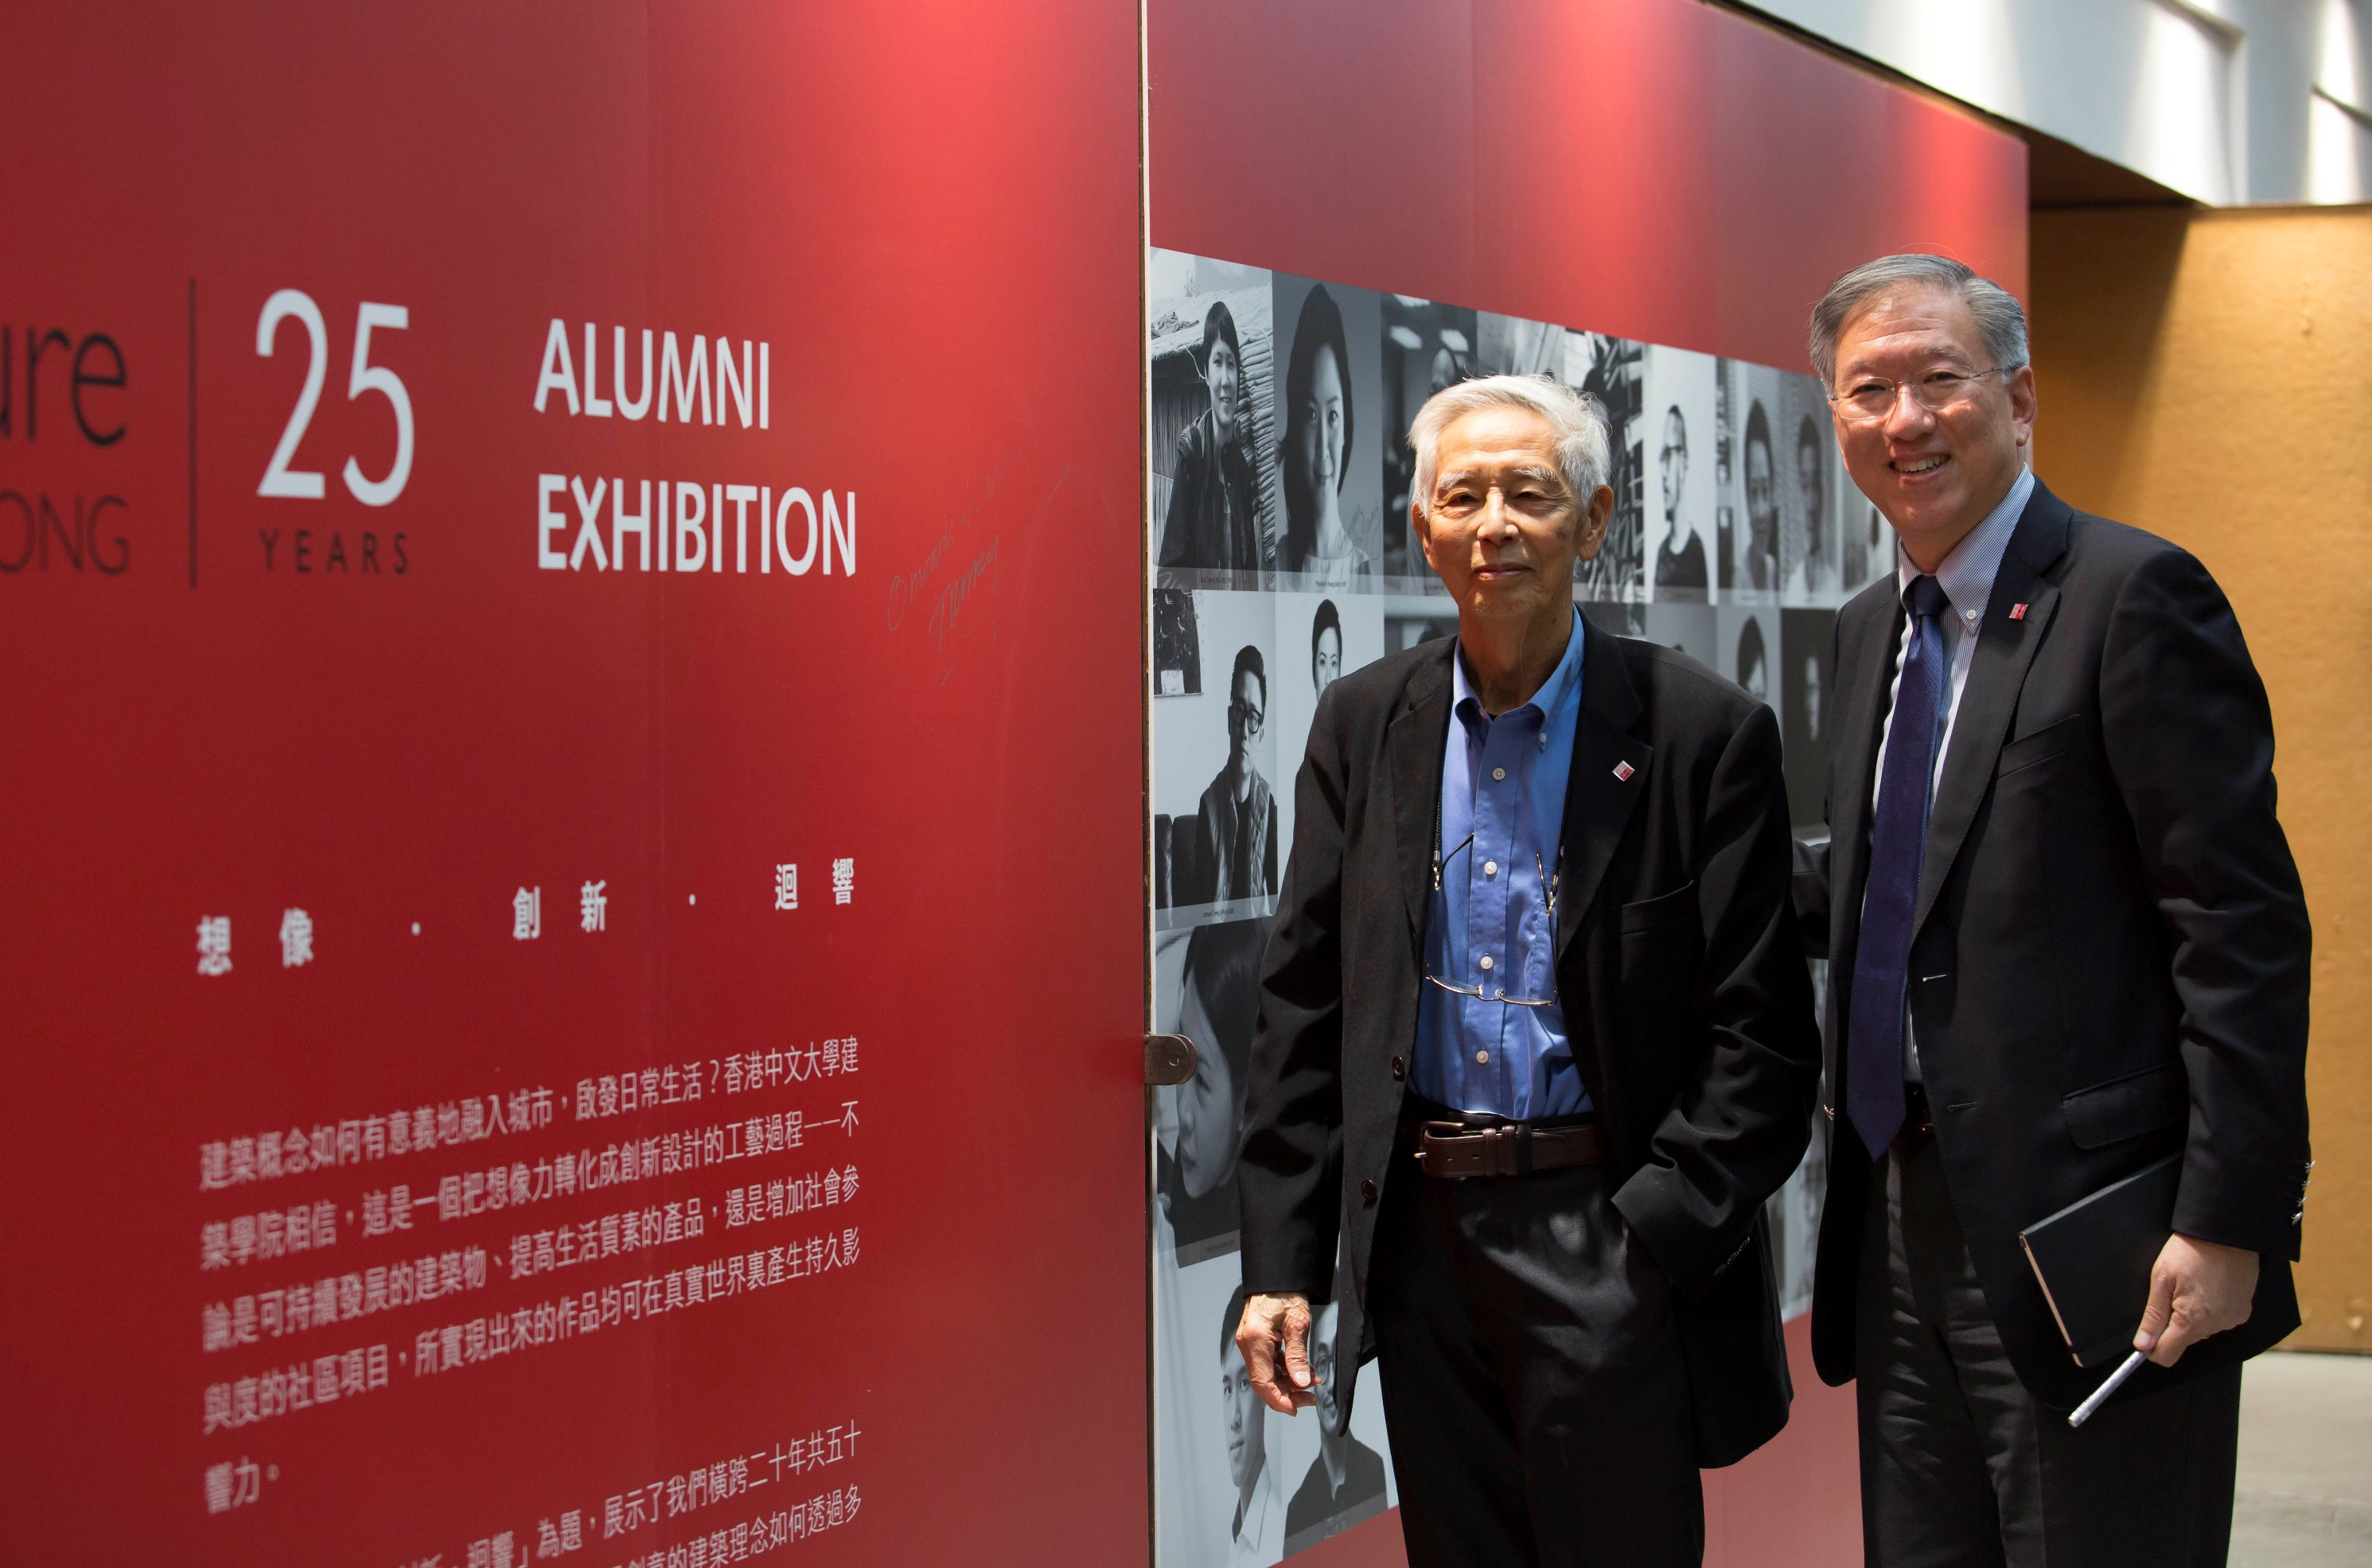 Emeritus Professor Tunney Lee (left), Founding Chairman of the CUHK architecture programme, and Prof. Nelson Chen, Director of the School of Architecture.